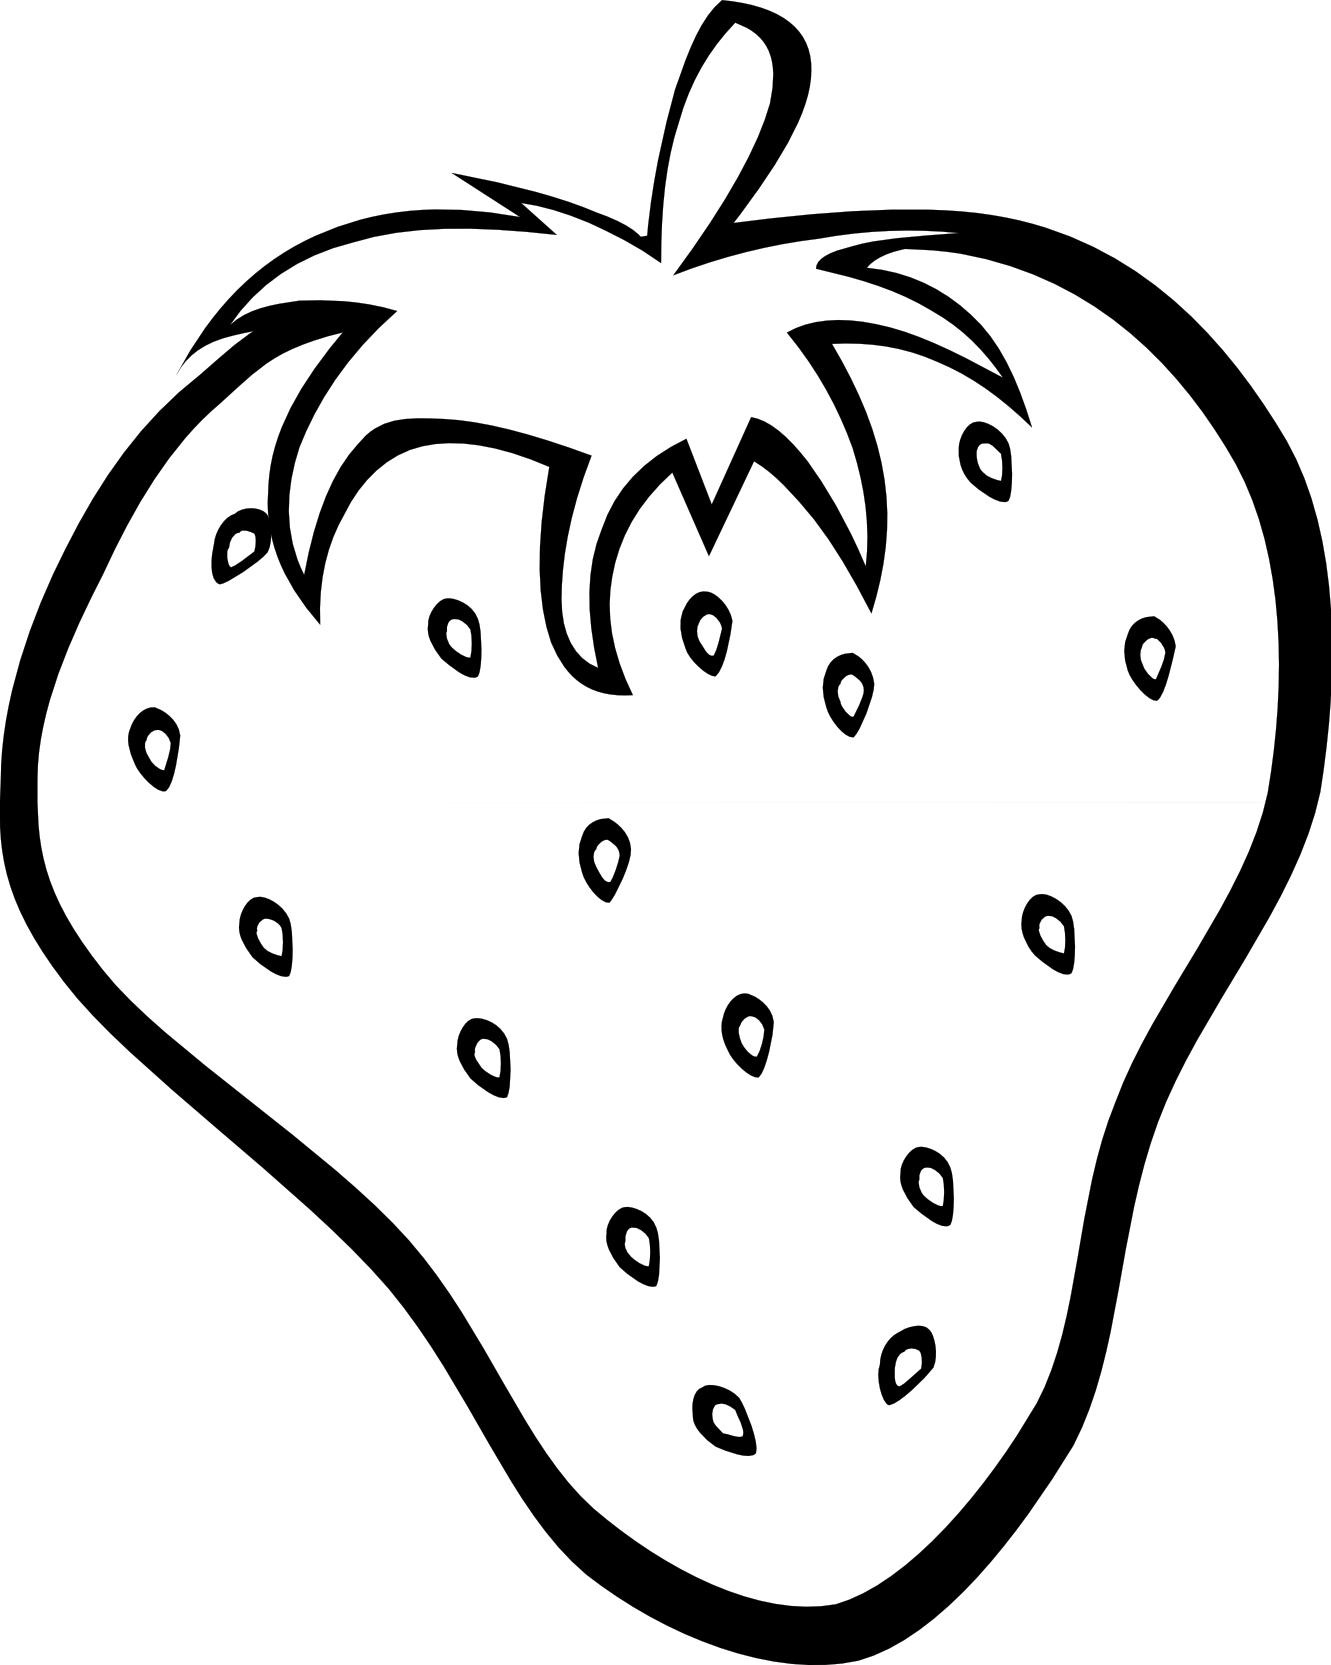 Simple Black And White Line Art : Simple fruit ff menu black white line art clipart